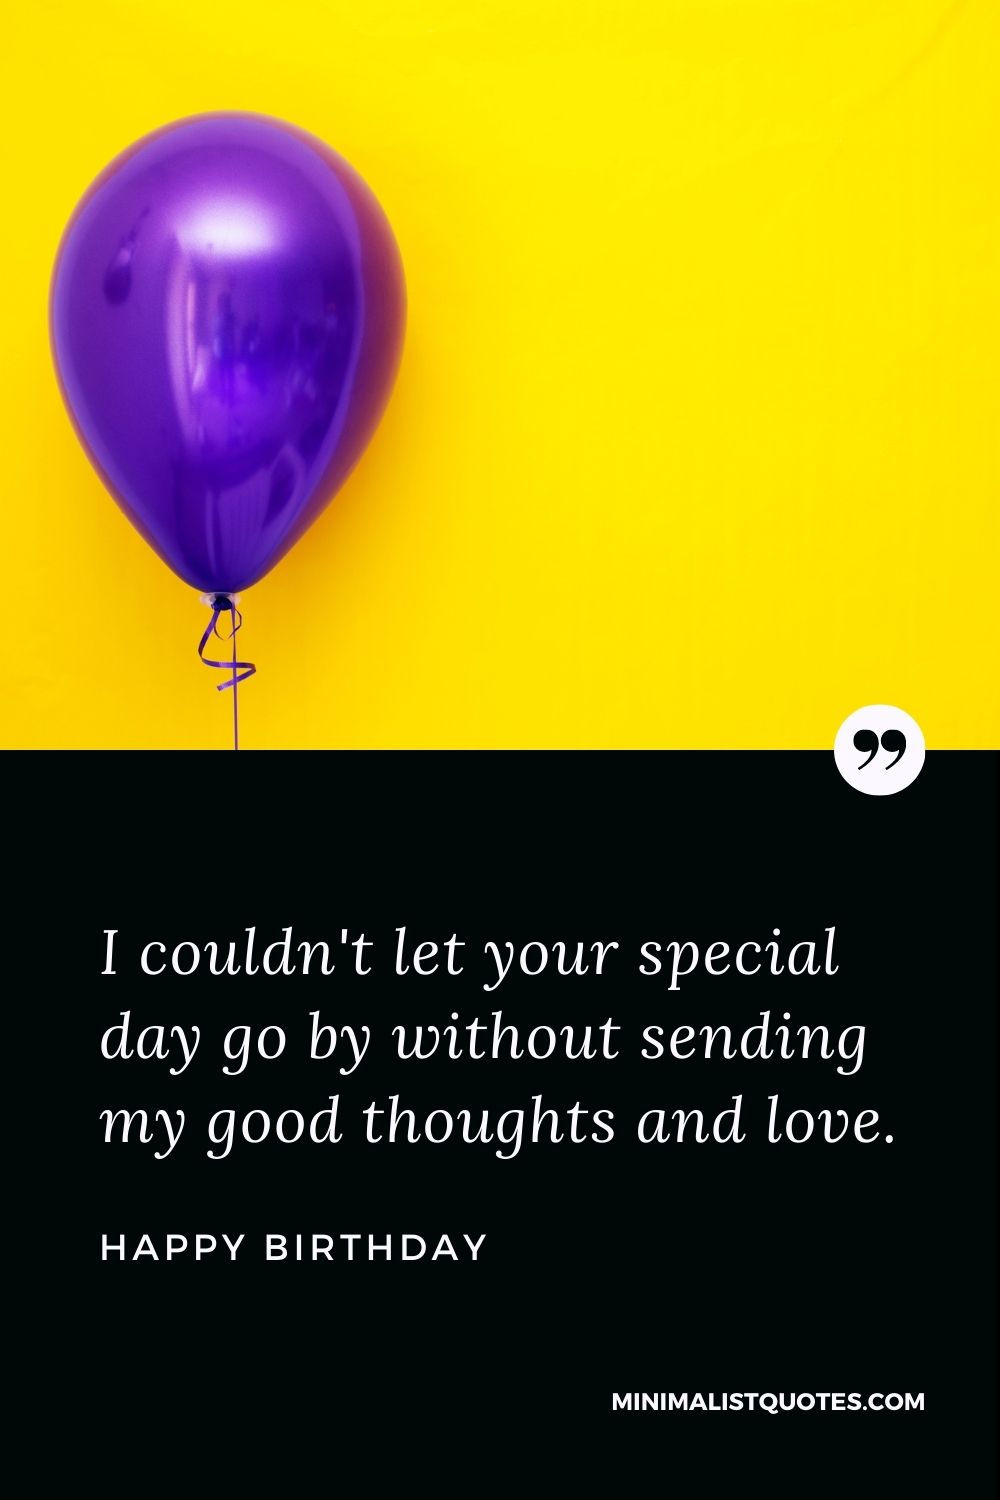 Happy Birthday Wishes - I couldn't let your special day go by without sending my good thoughts and love.